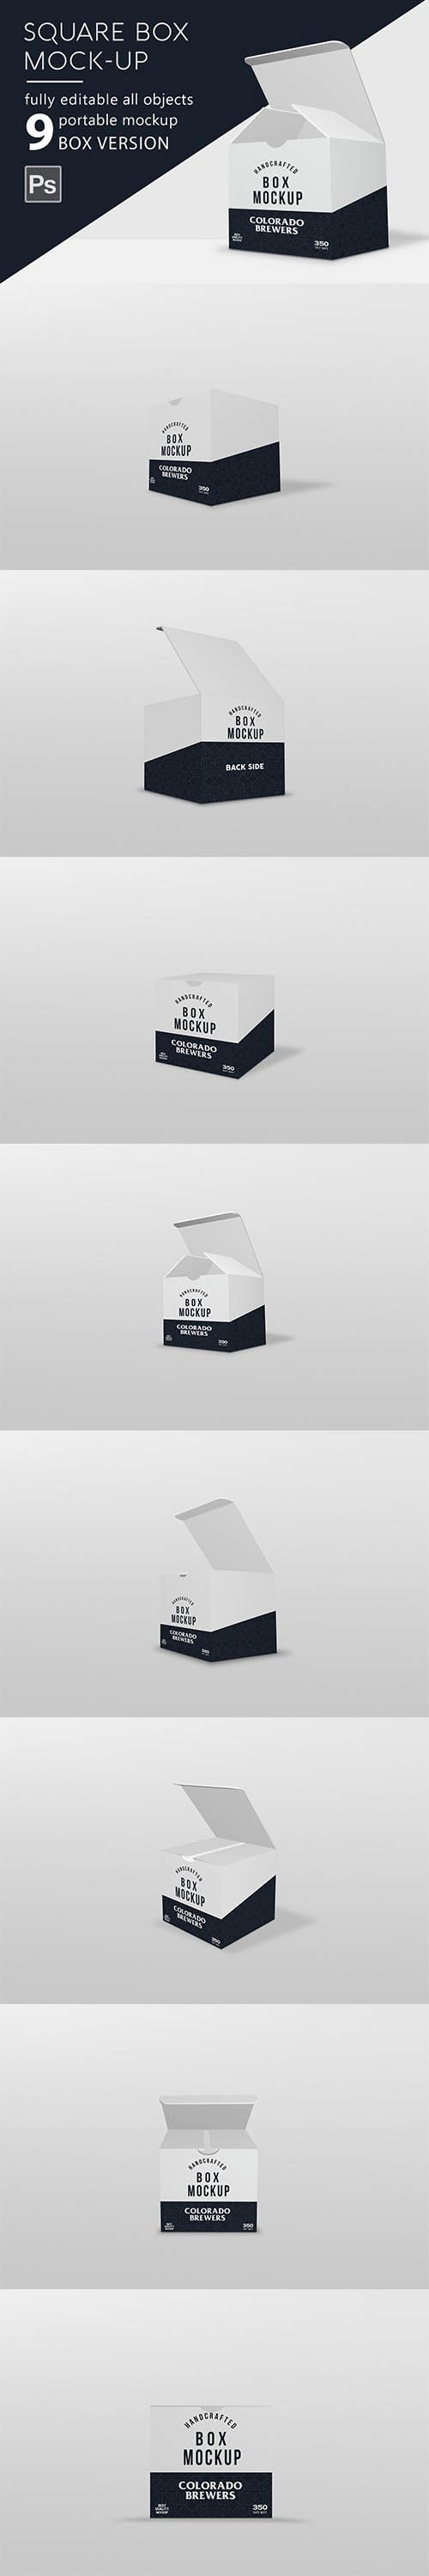 CreativeMarket - Box Mockup Square 2940718